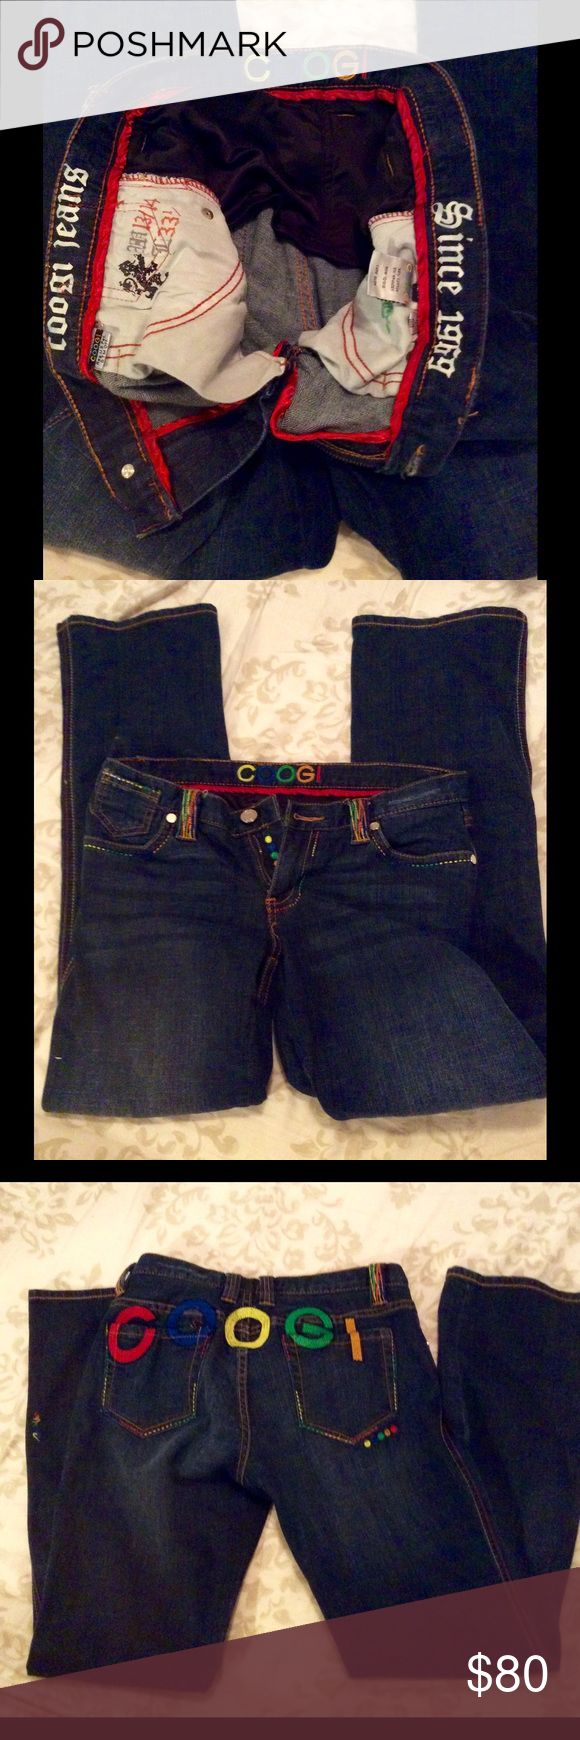 NWOT LIMITED EDITION COOGI RASTA JEANS These are an awesome looking pair of Authentic COOGI JEANS. Beautifully detailed stitching. Never worn. The size says 13/14 W. 33 1/2 L COOGI Jeans Straight Leg